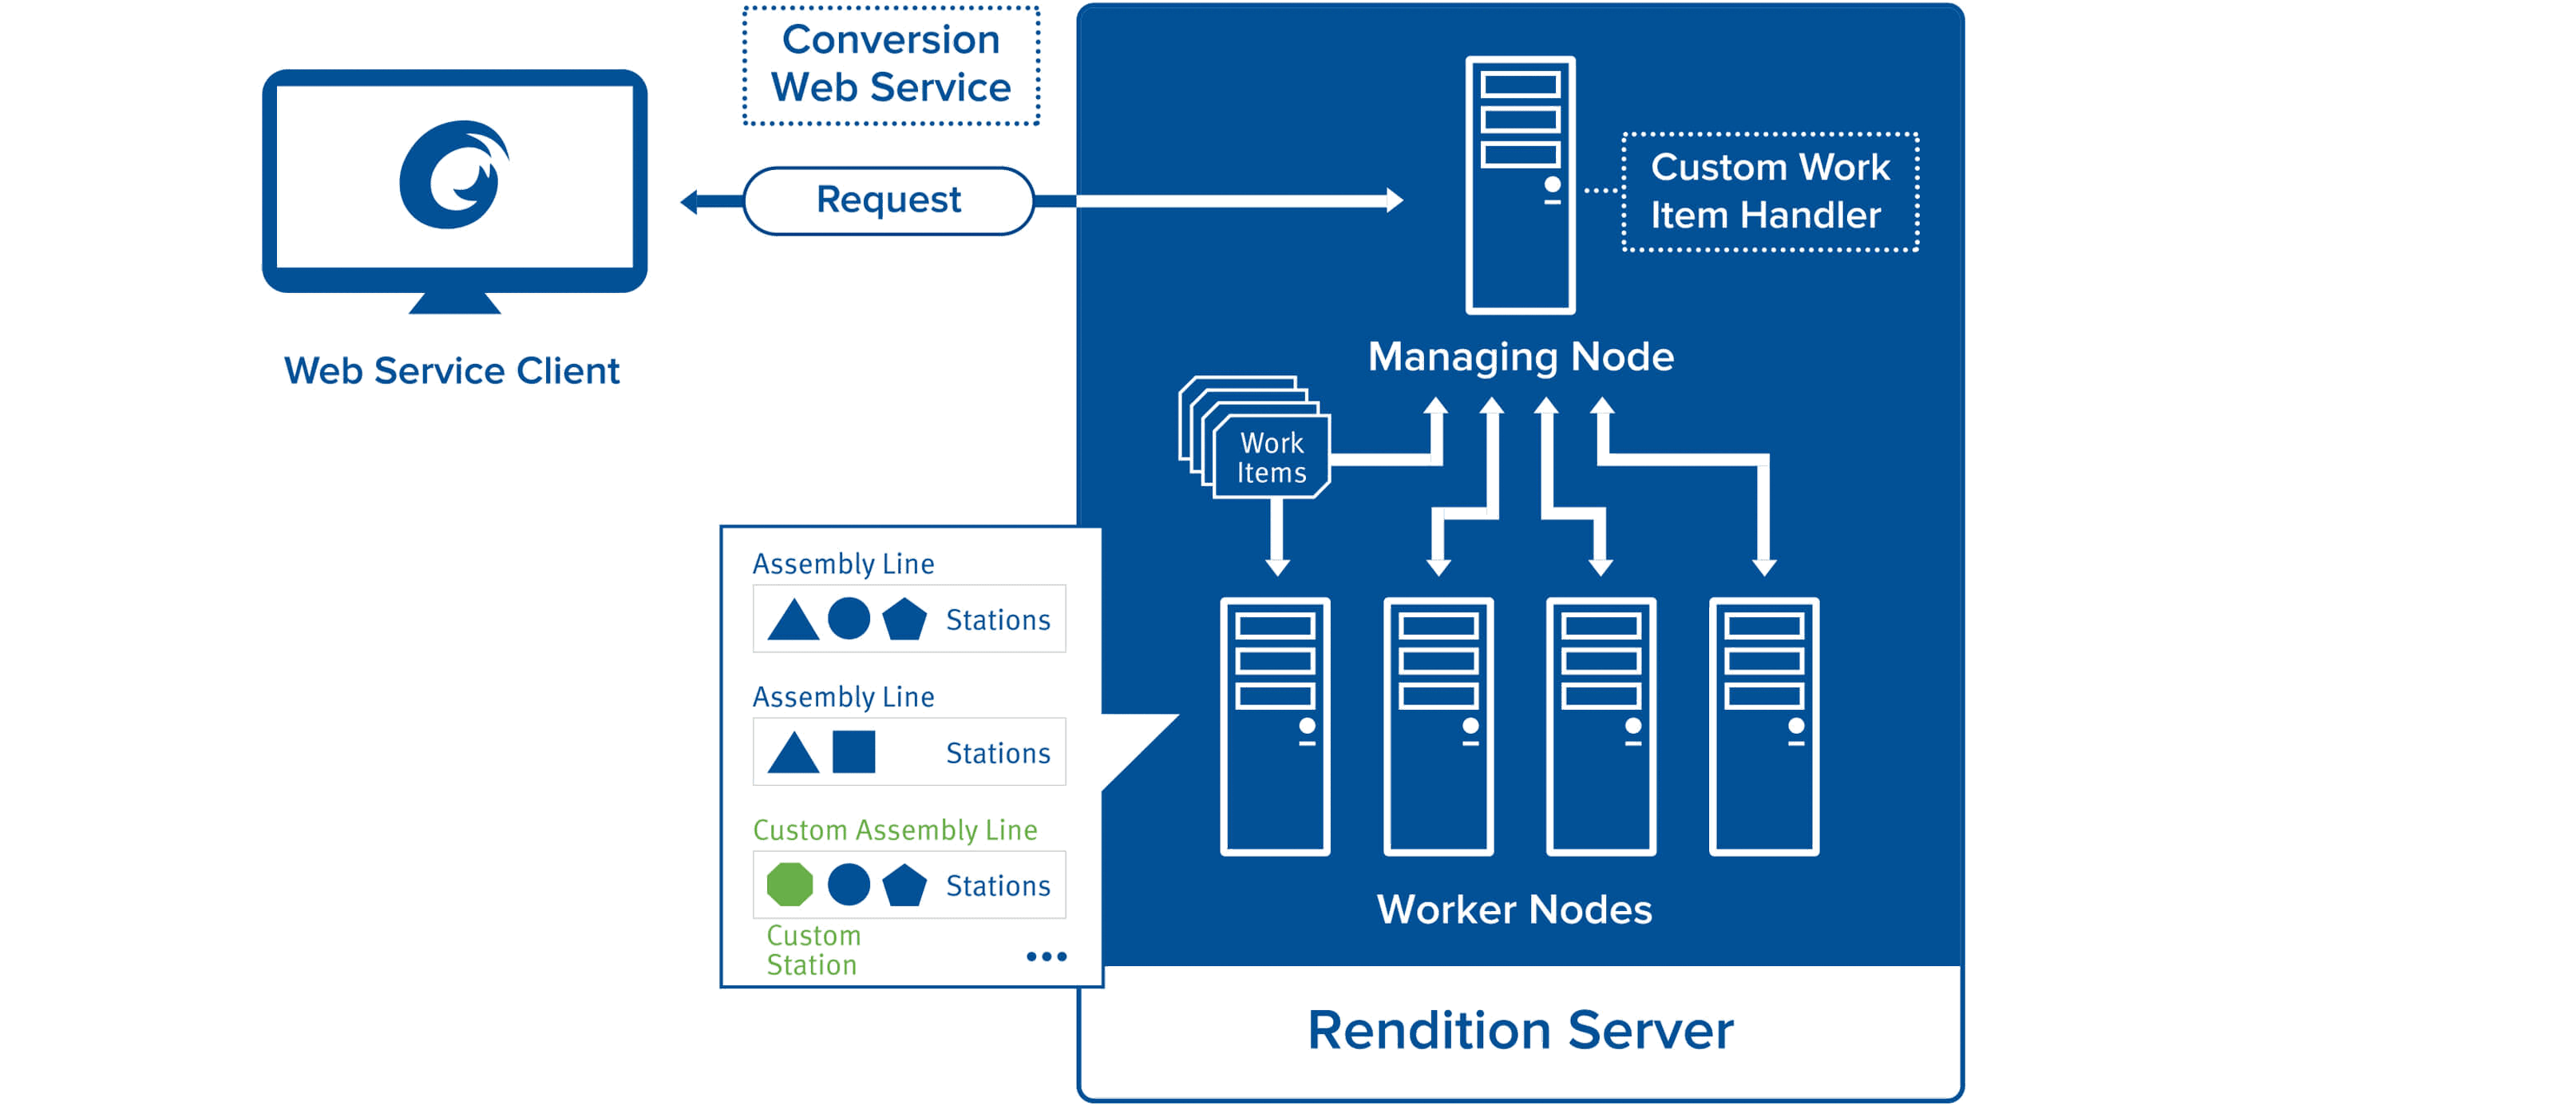 Rendition Server How it Works